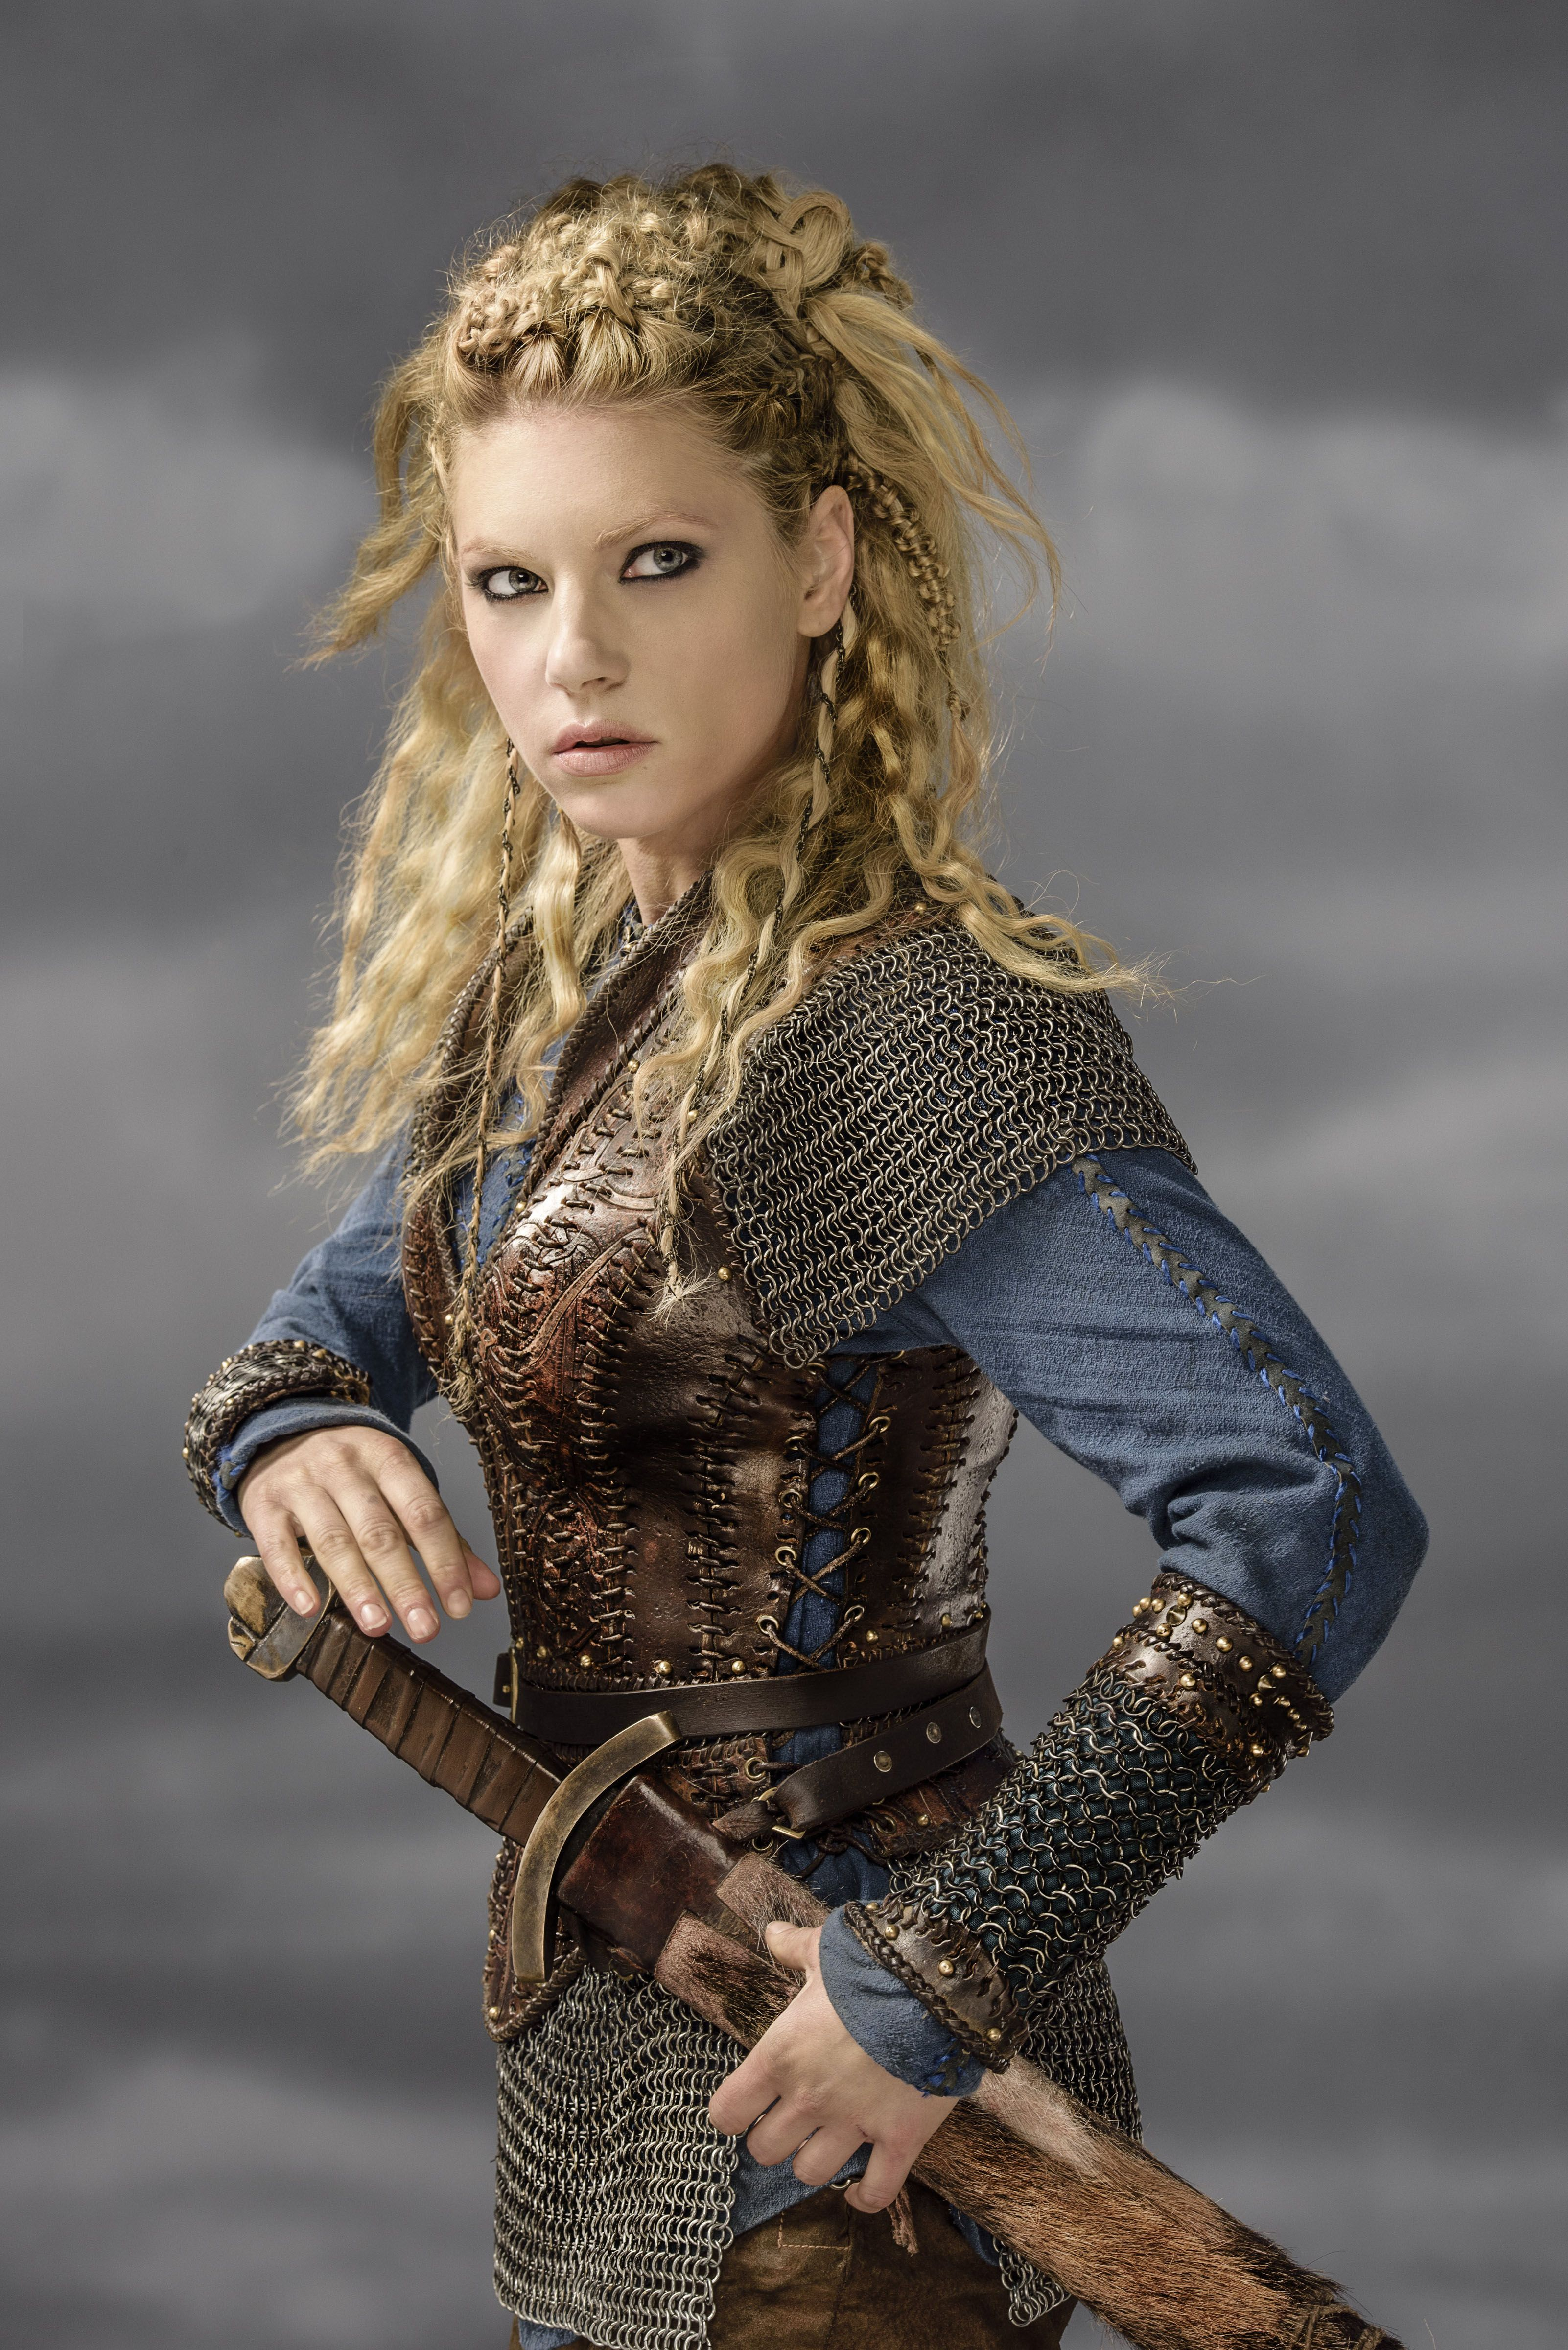 lagertha costume pattern-#41